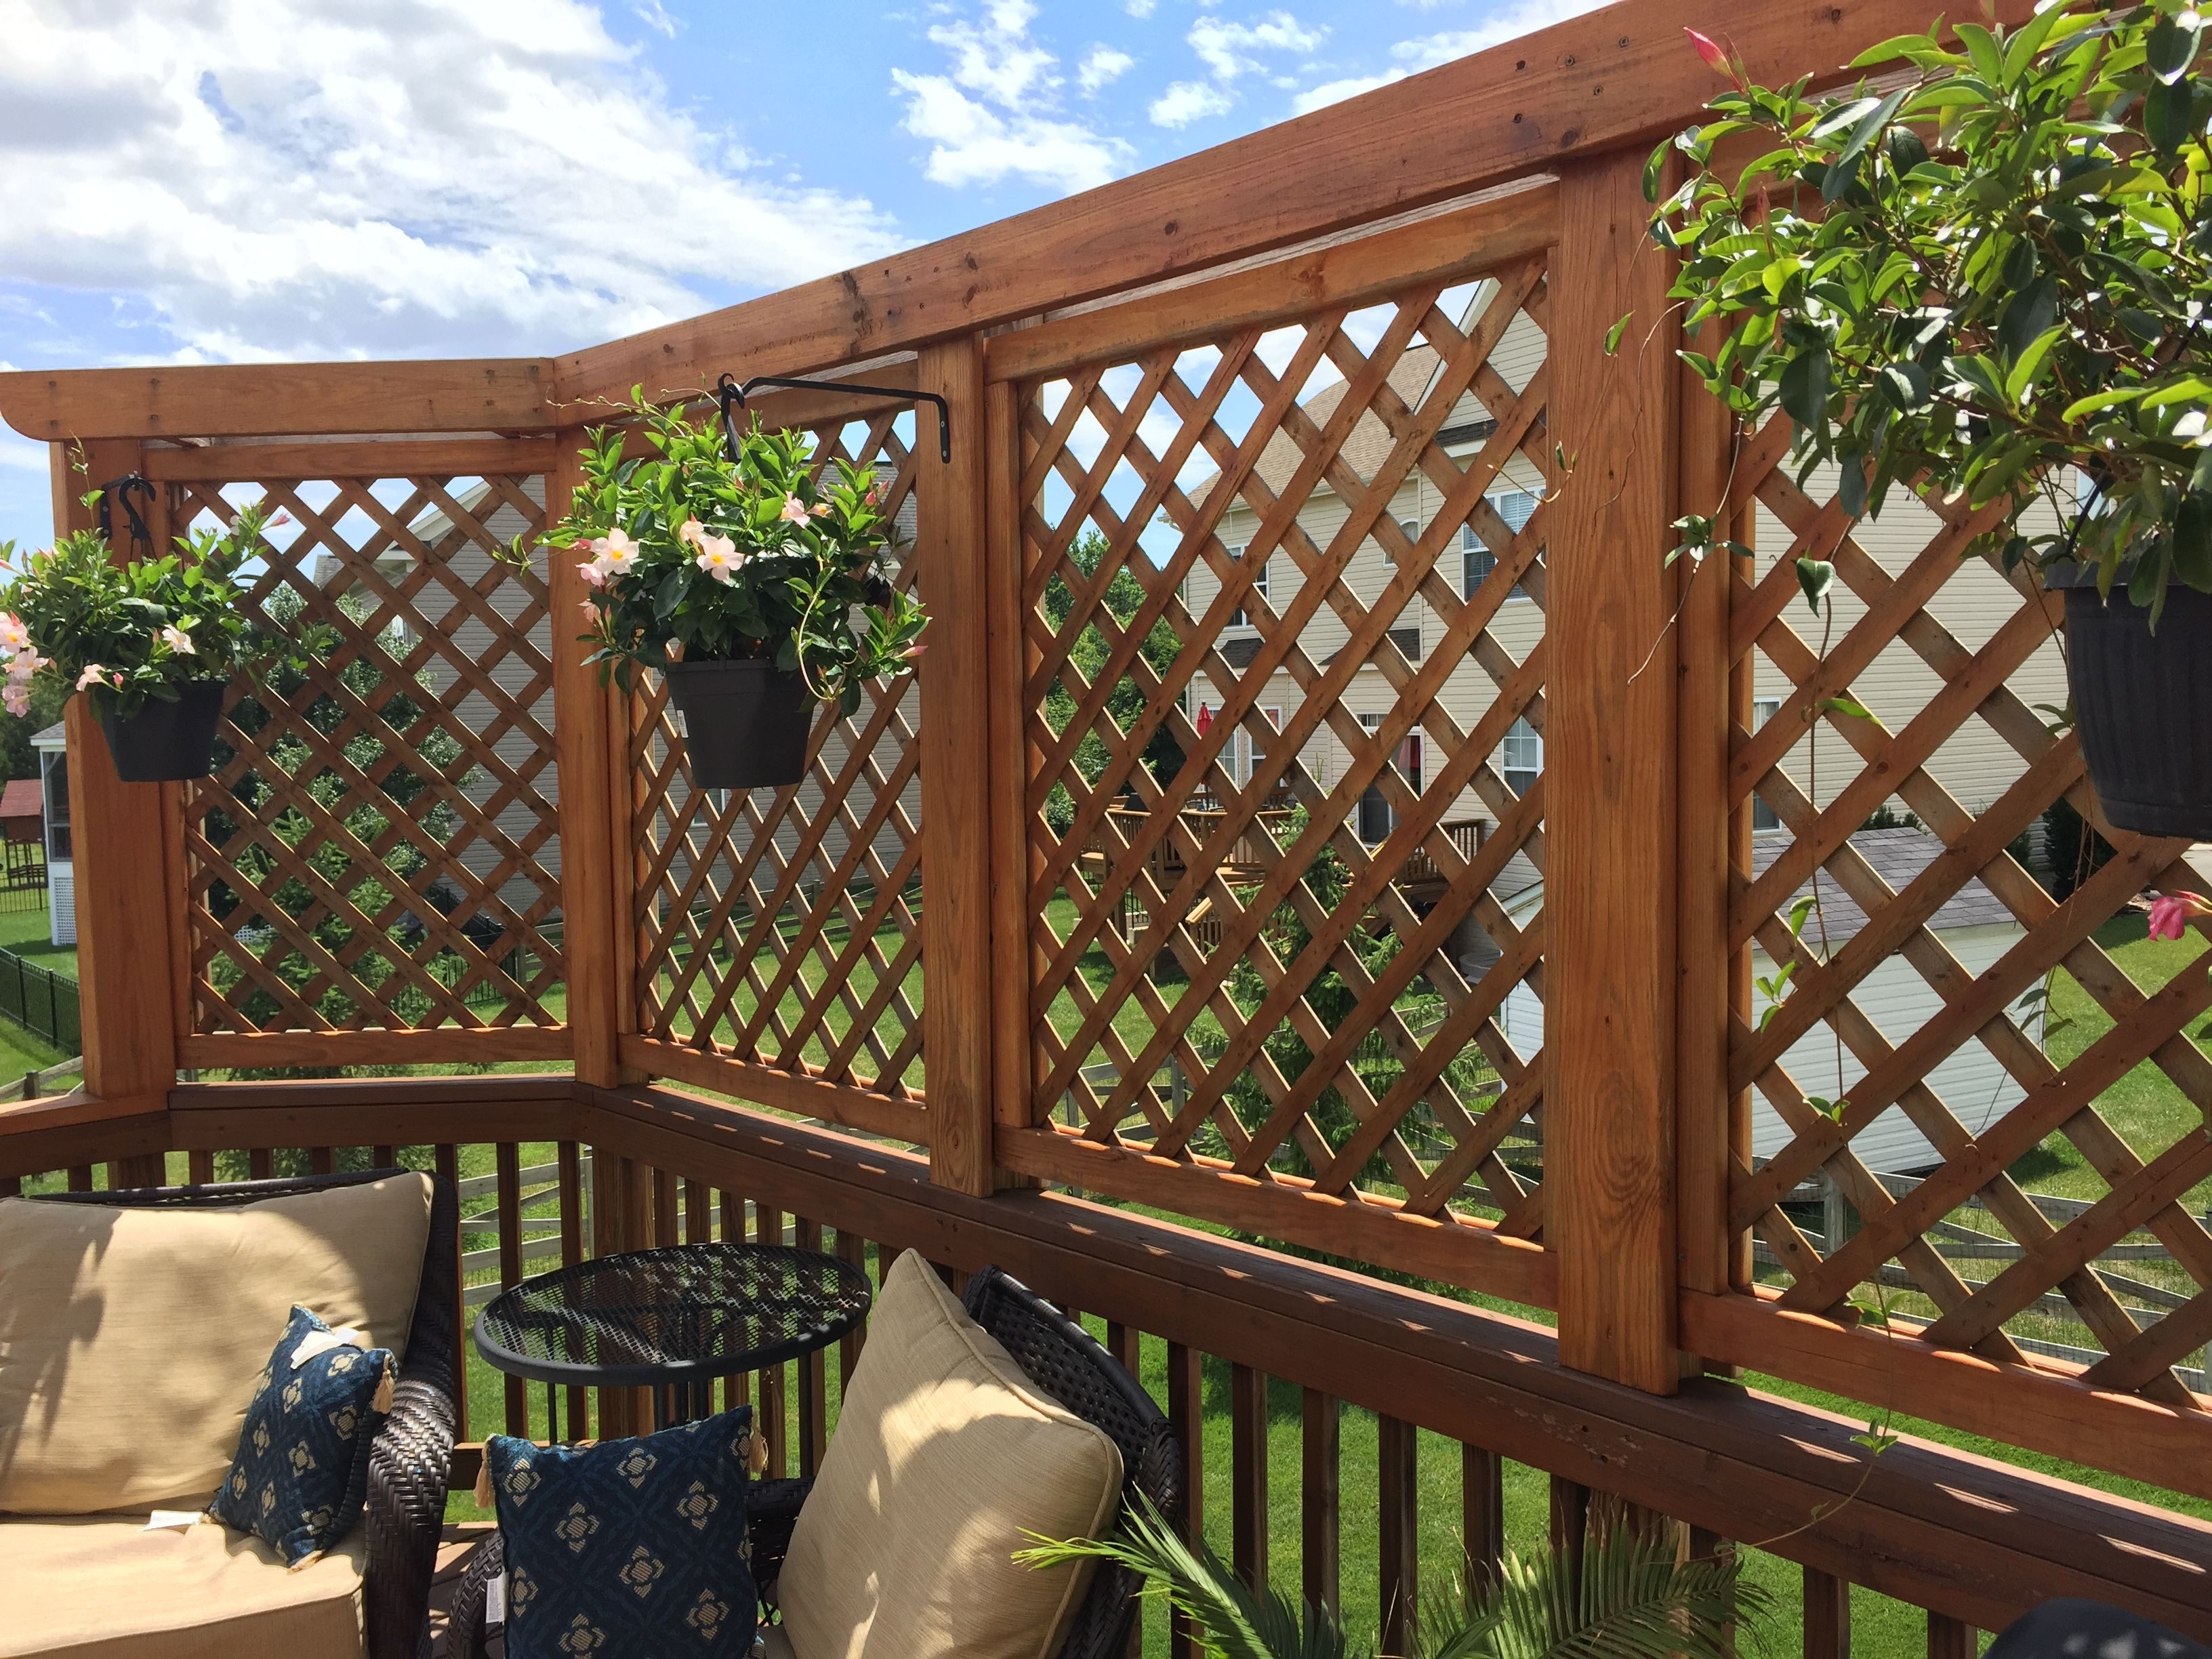 28 Awesome Diy Outdoor Privacy Screen Ideas With Picture Outdoor Privacy Privacy Screen Outdoor Privacy Screen Deck